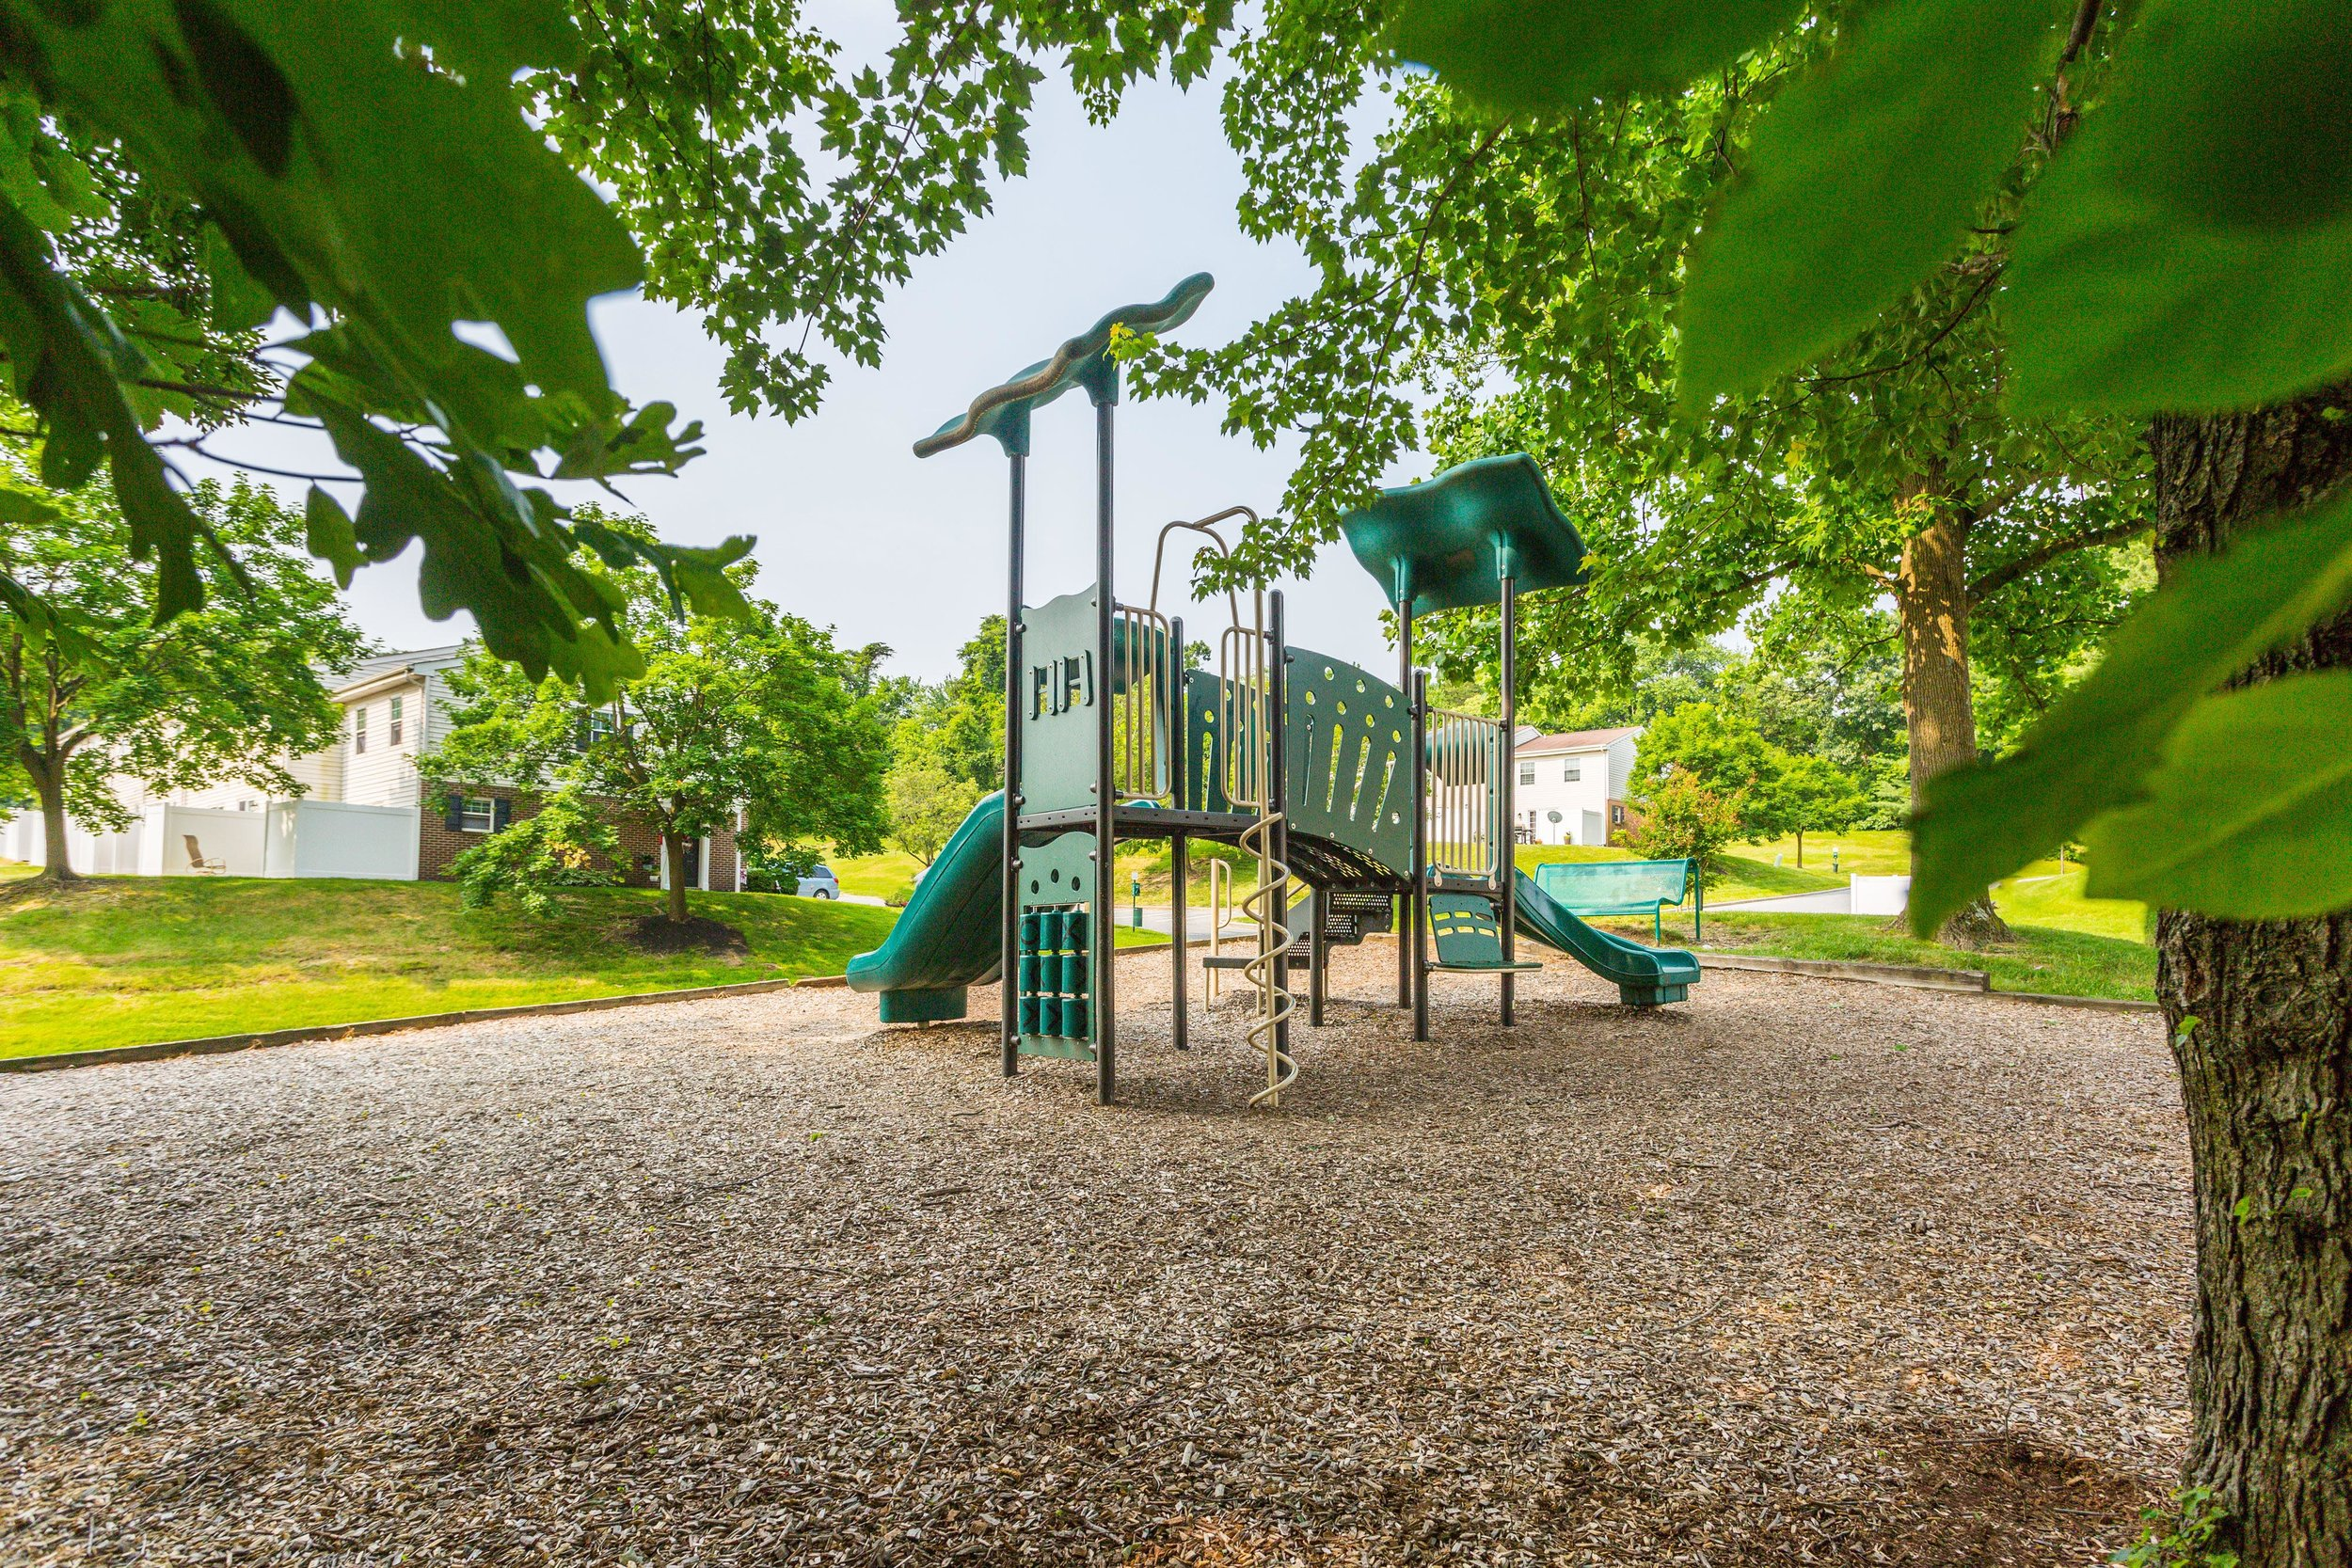 Playground at Olde Forge Rental Townhomes in Perry Hall, MD